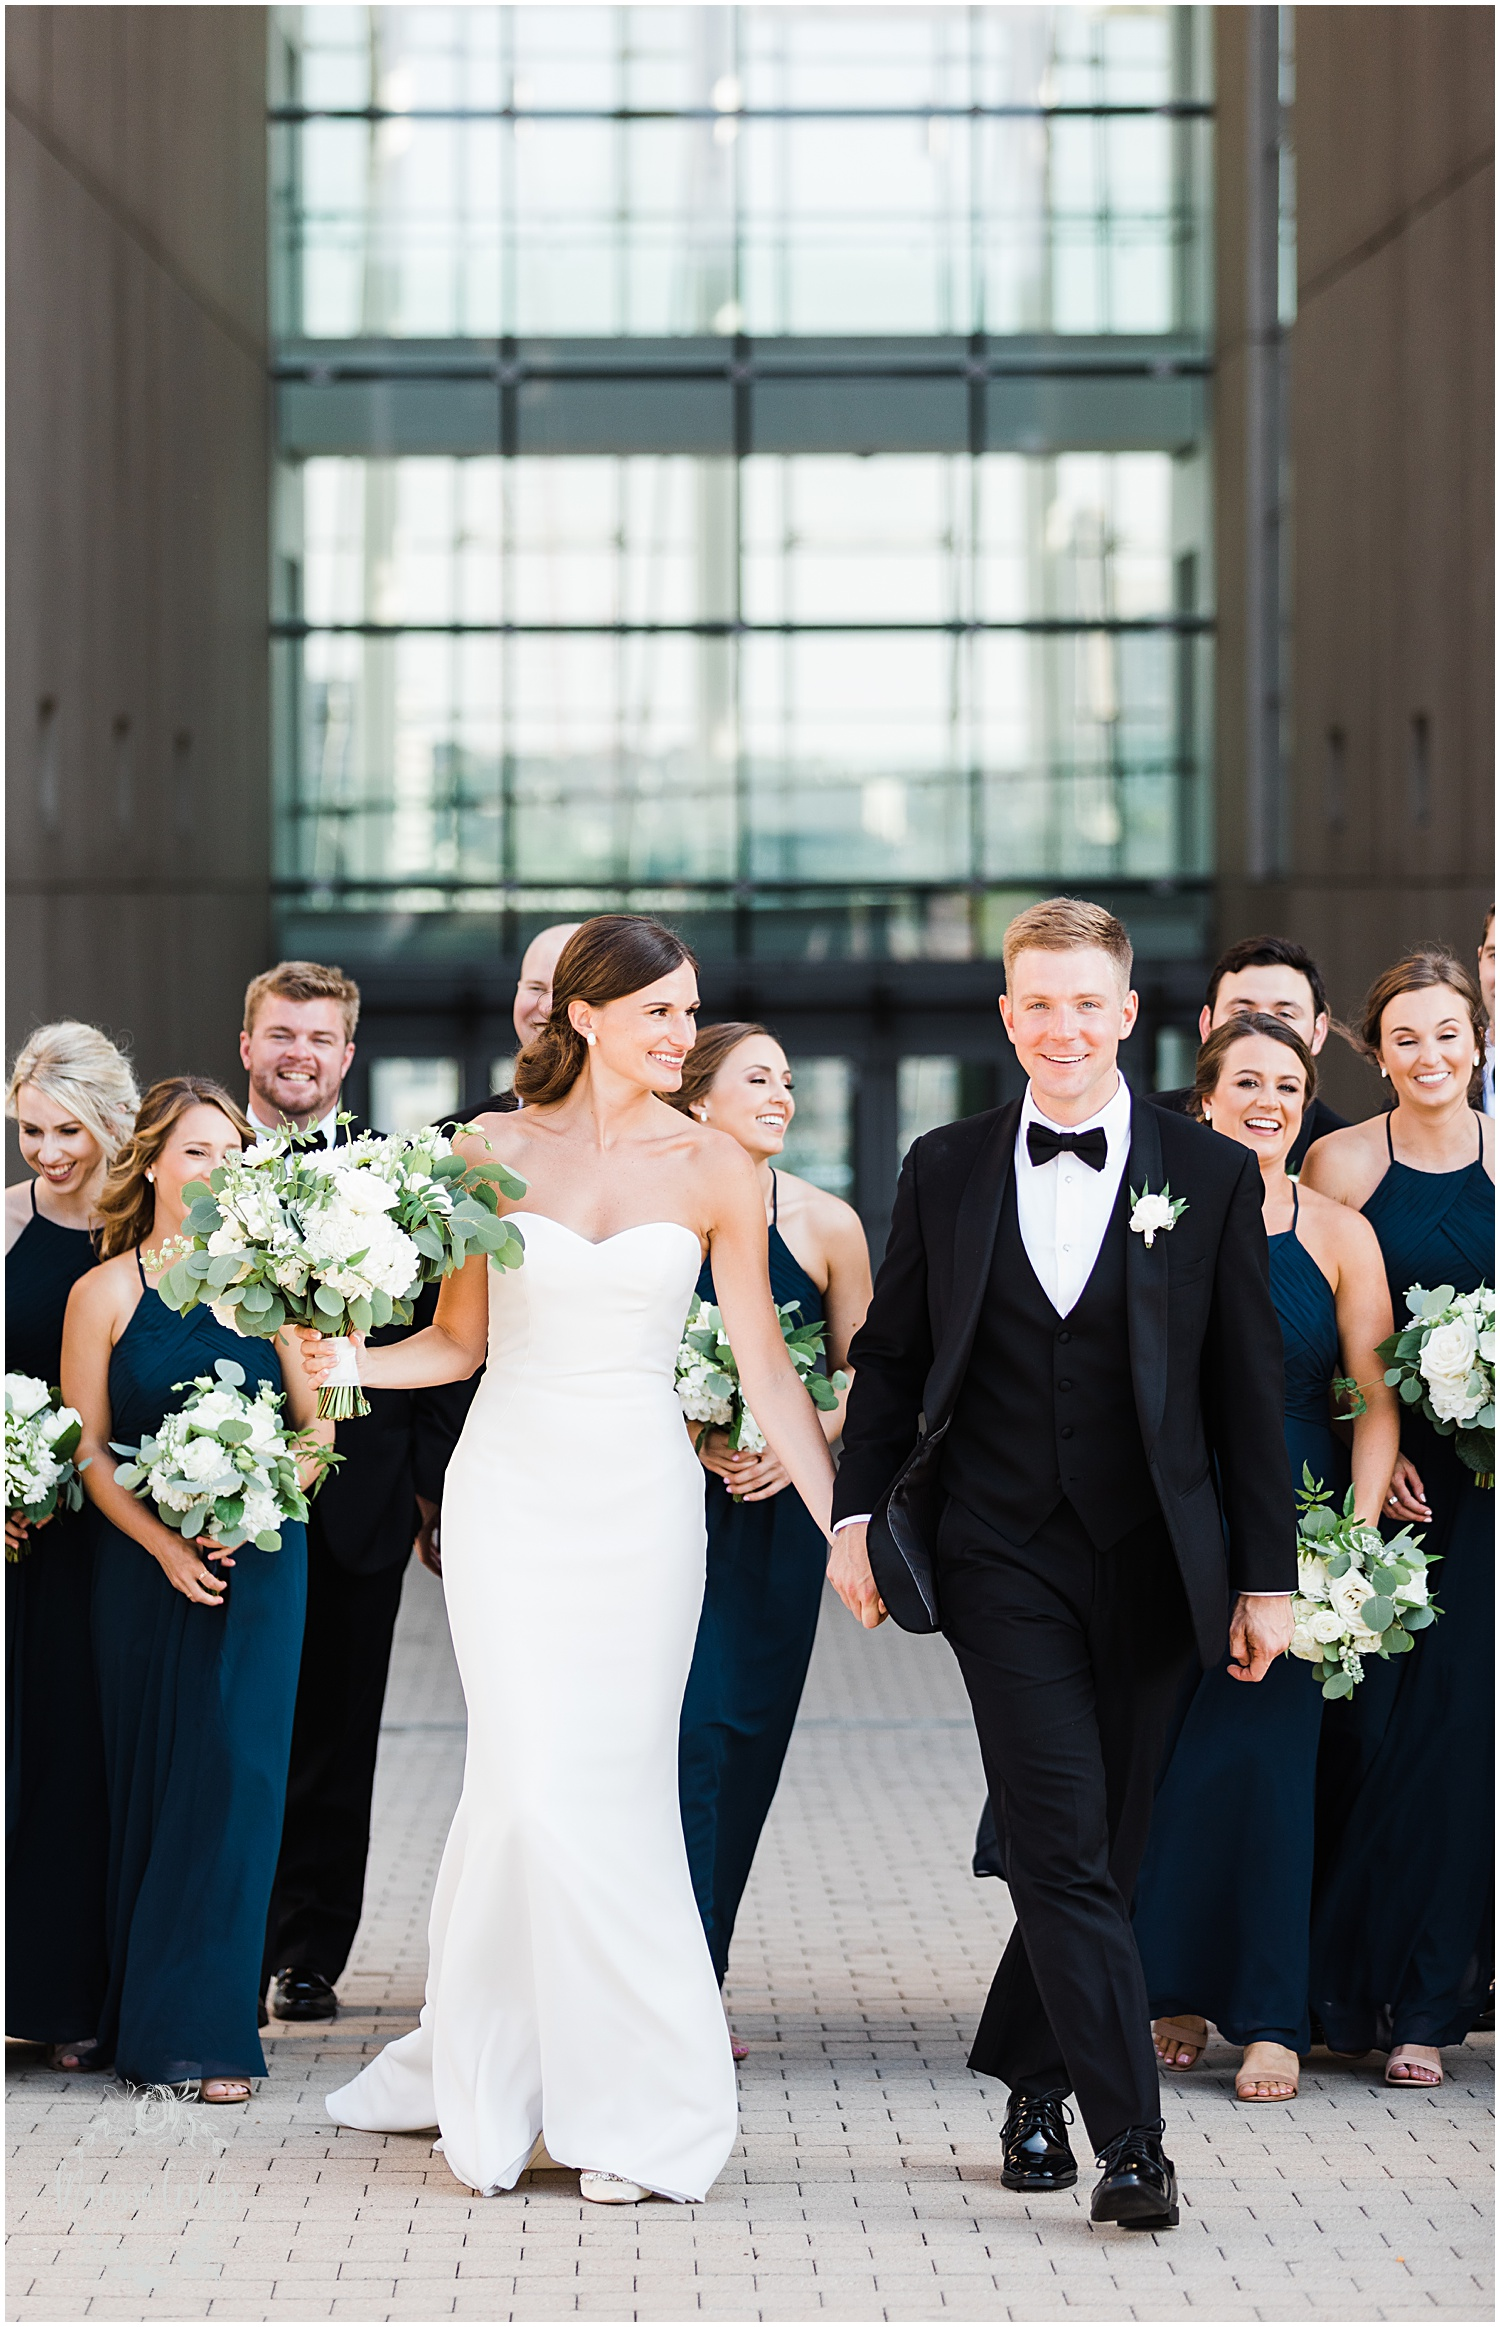 JOANNE & GEORGE MARRIED BLOG | MARISSA CRIBBS PHOTOGRAPHY | THE ABBOTT | KANSAS CITY WEDDING PHOTOS_9099.jpg